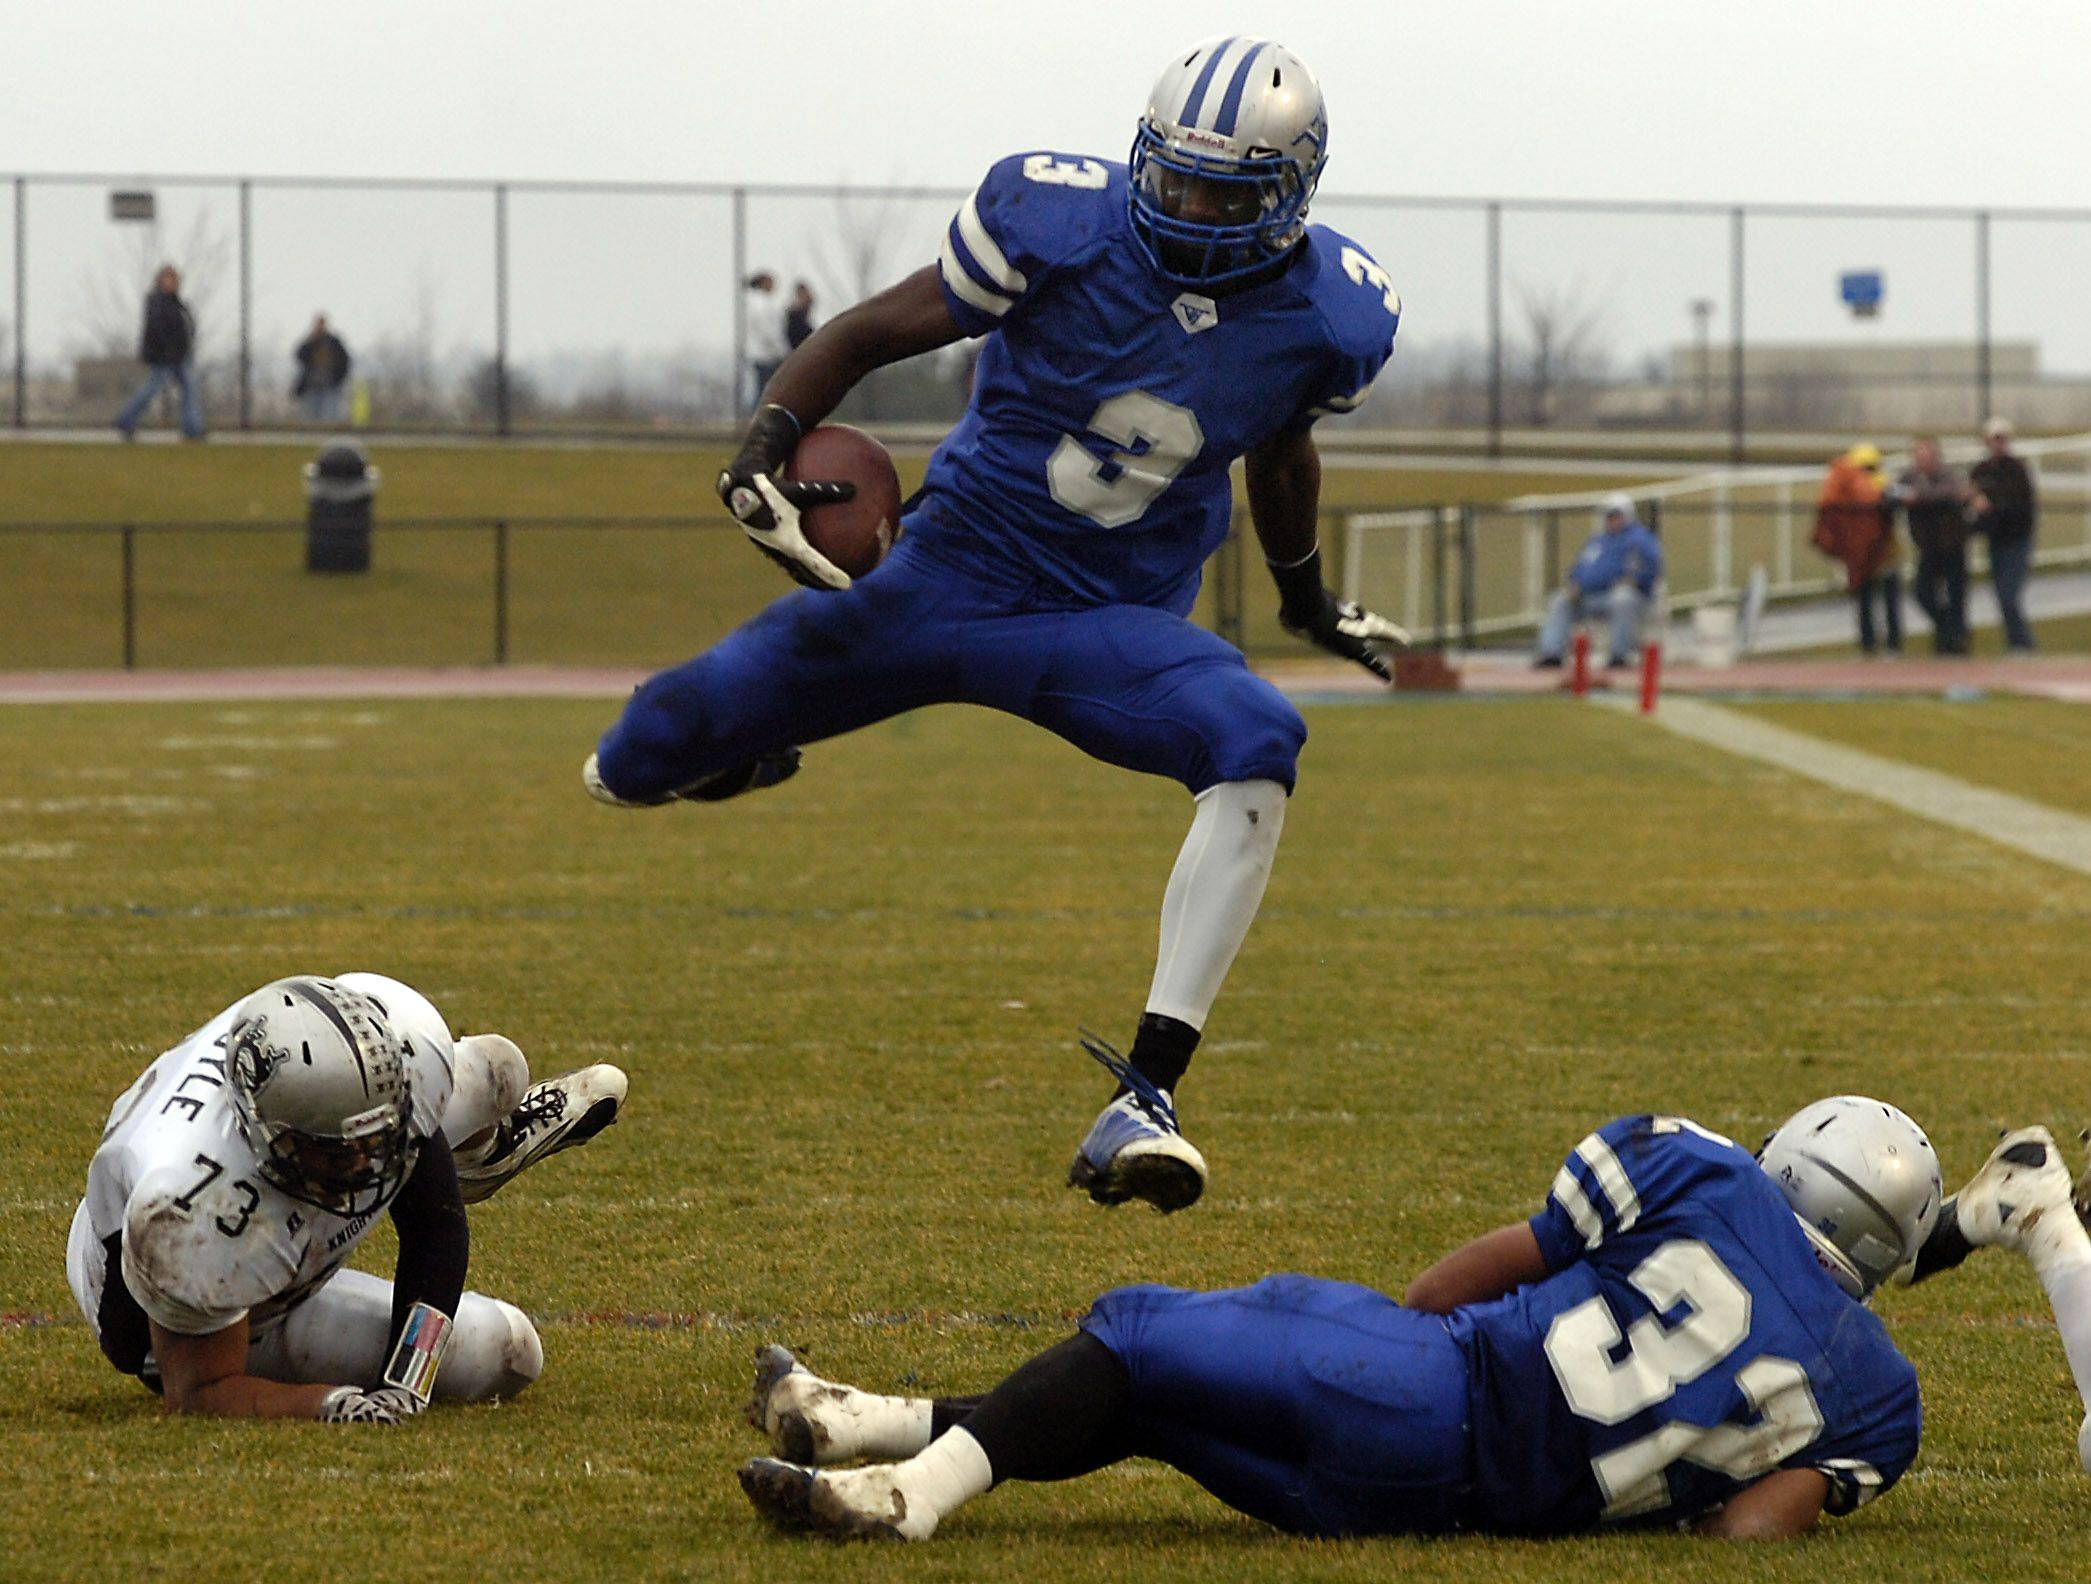 DaVaris Daniels goes airborne as he sheds Kaneland's Jimmy Boyle for yardage in the Class 5A football quarterfinals.